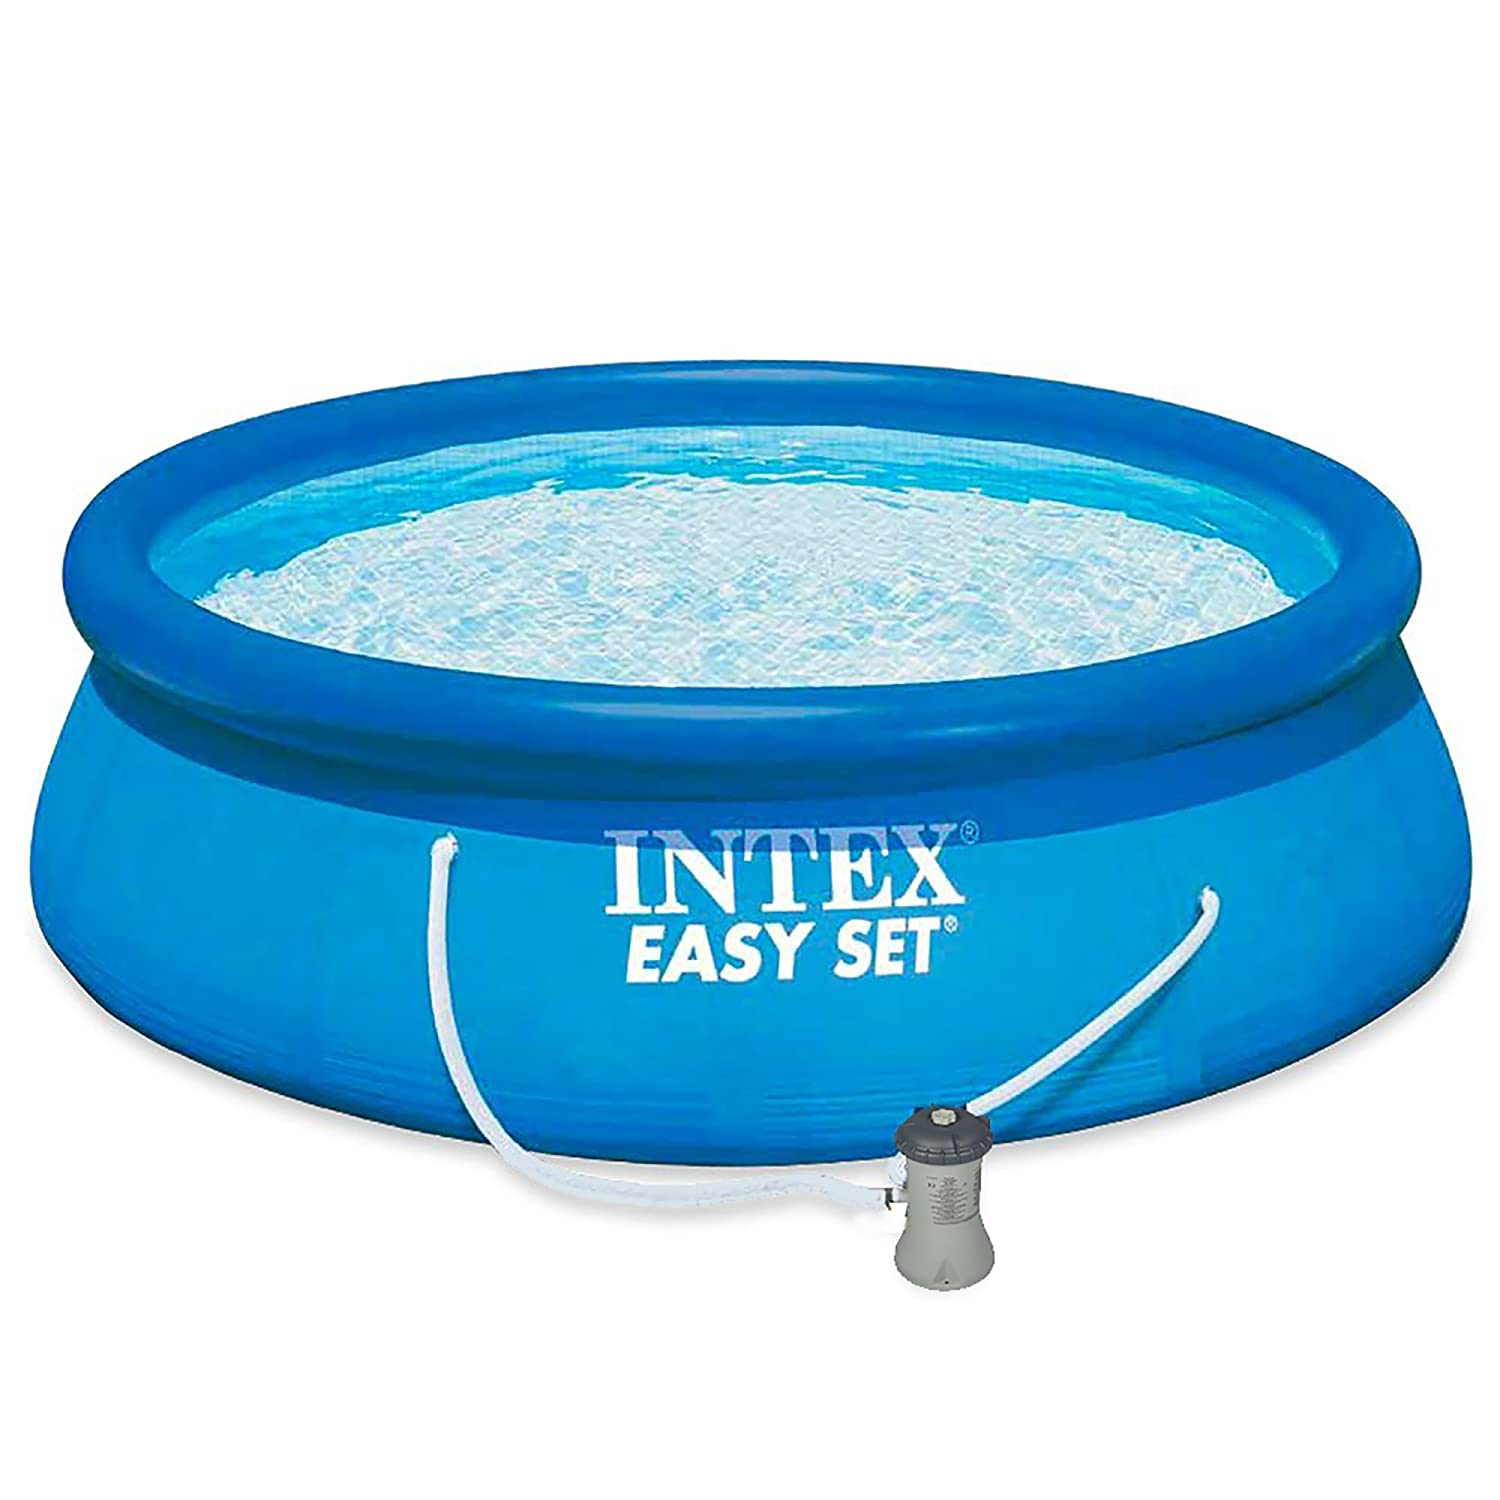 Intex 28142NP Easy Set - Piscina hinchable, 7.290 litro, 396 x 84 cm: Amazon.es: Jardín